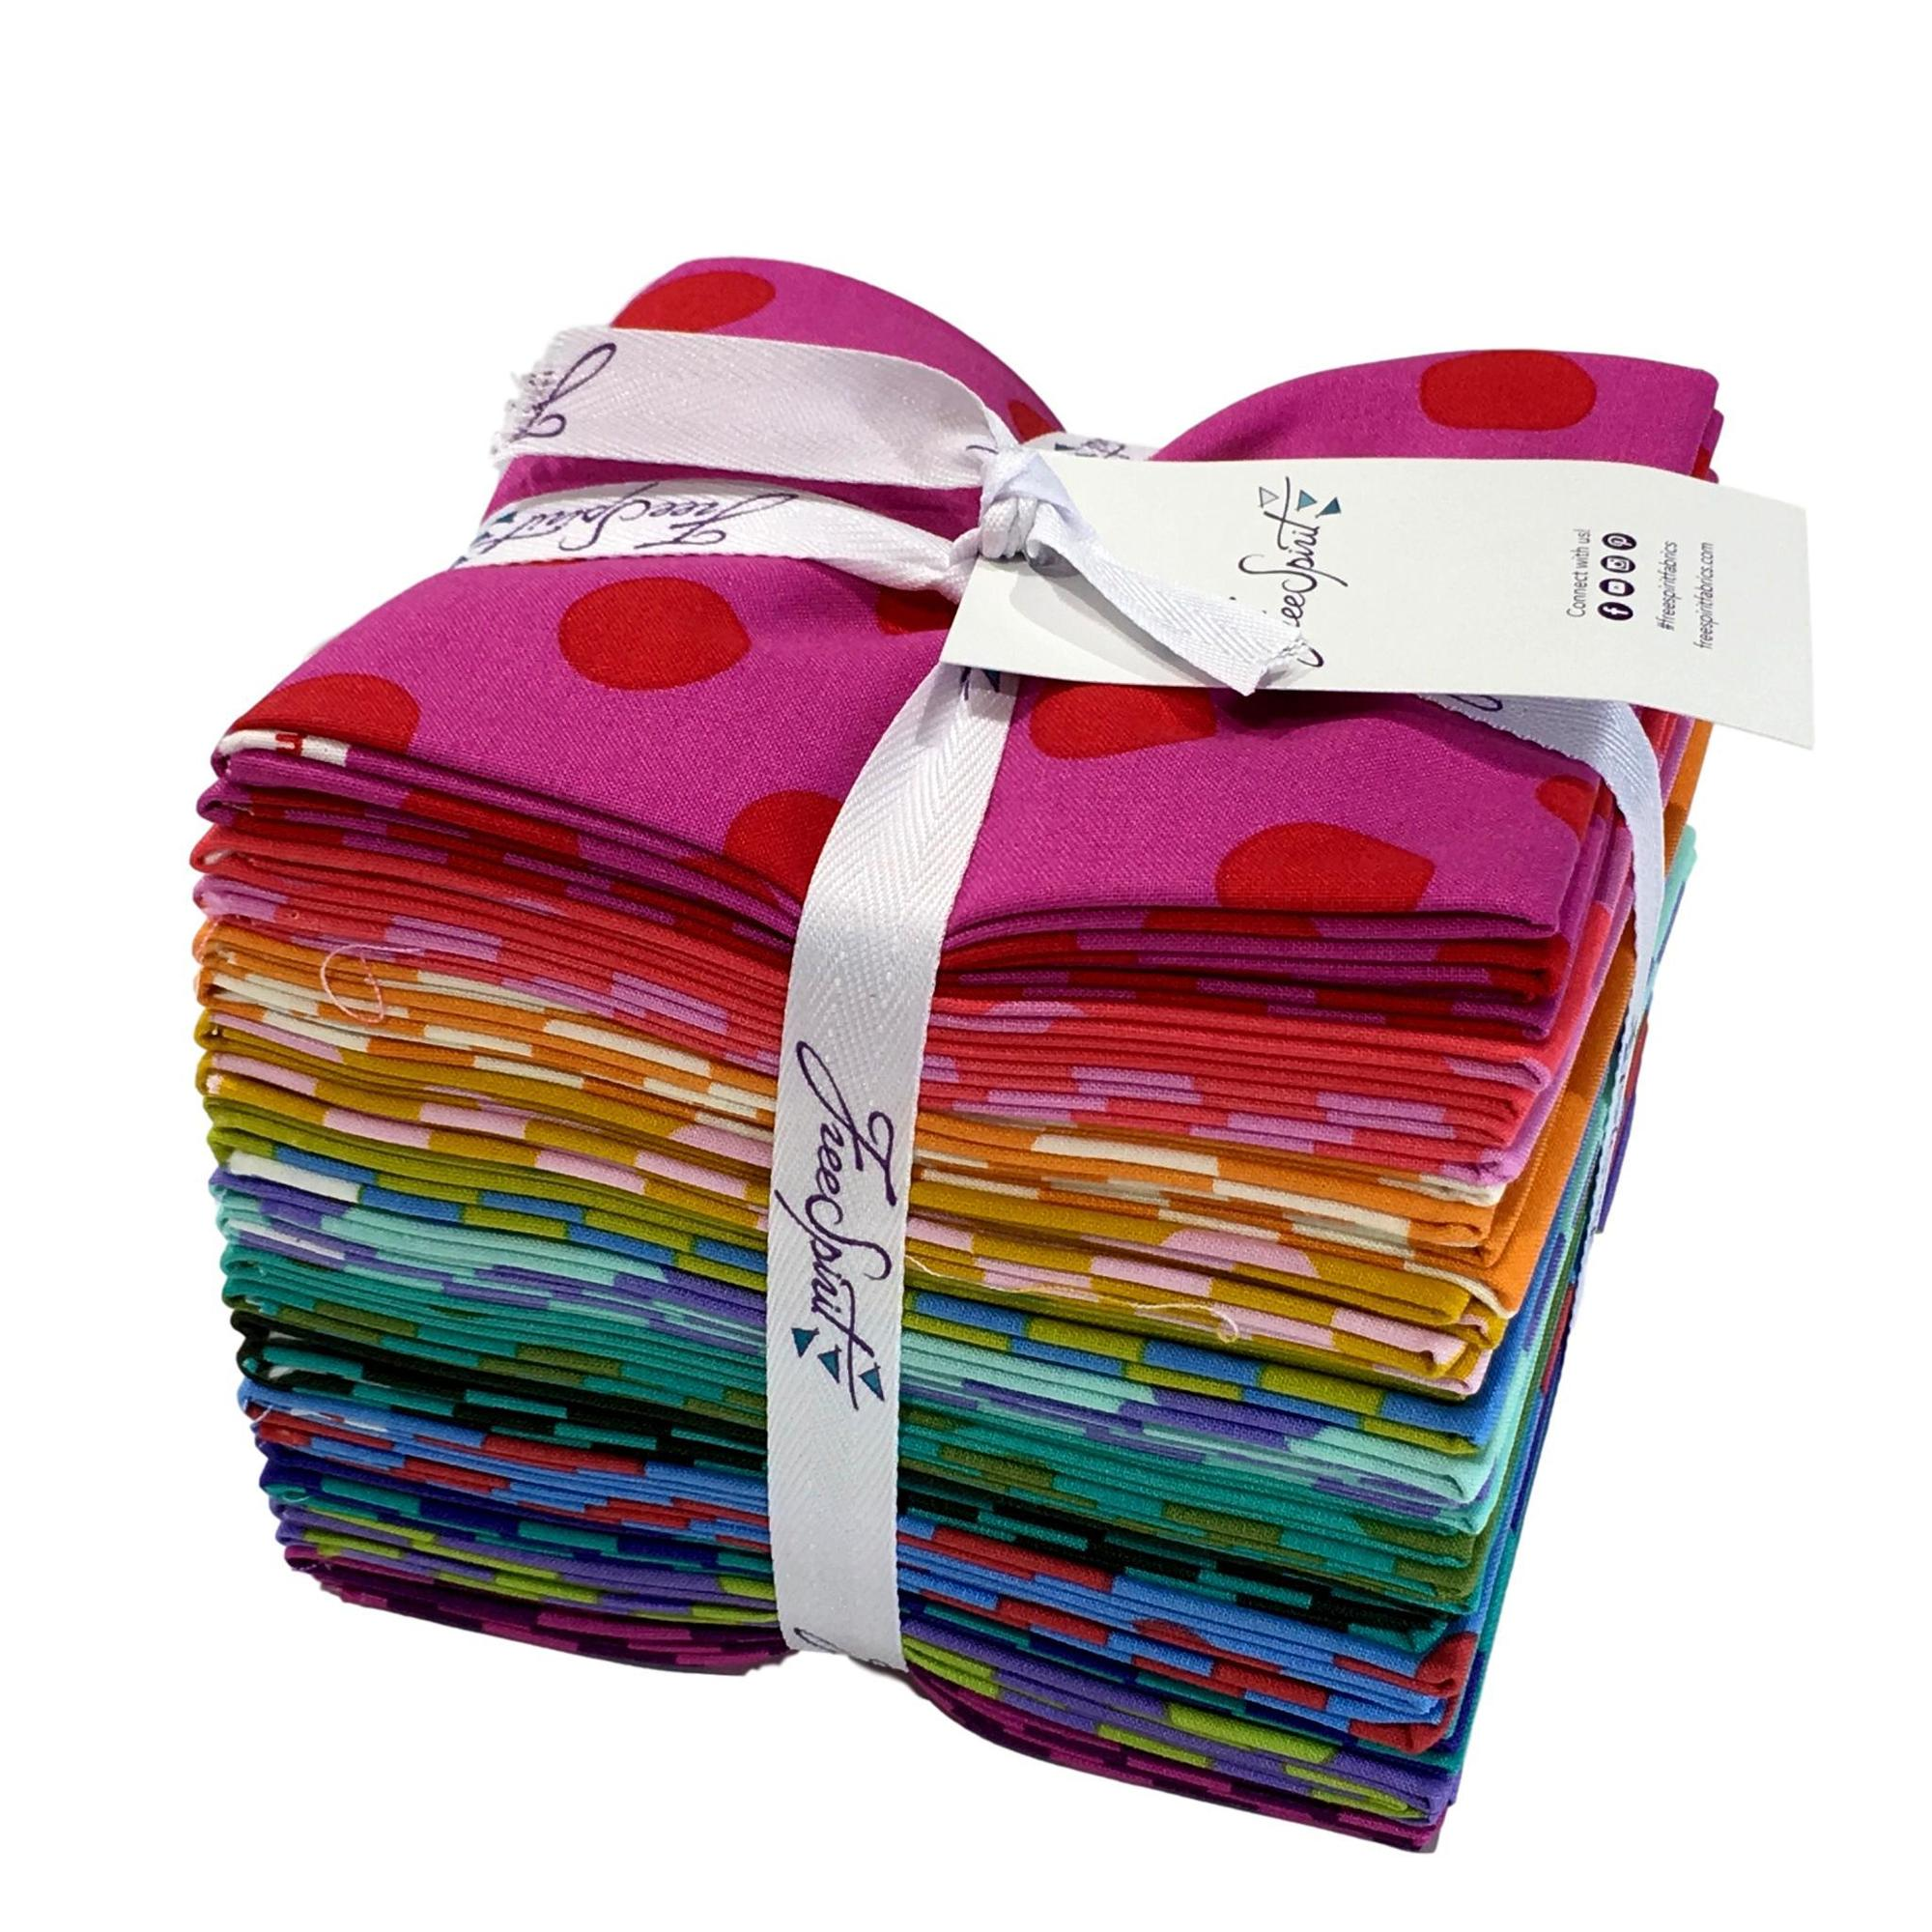 Tula Pink S All Stars Pom Poms Amp Stripes Fat Quarter